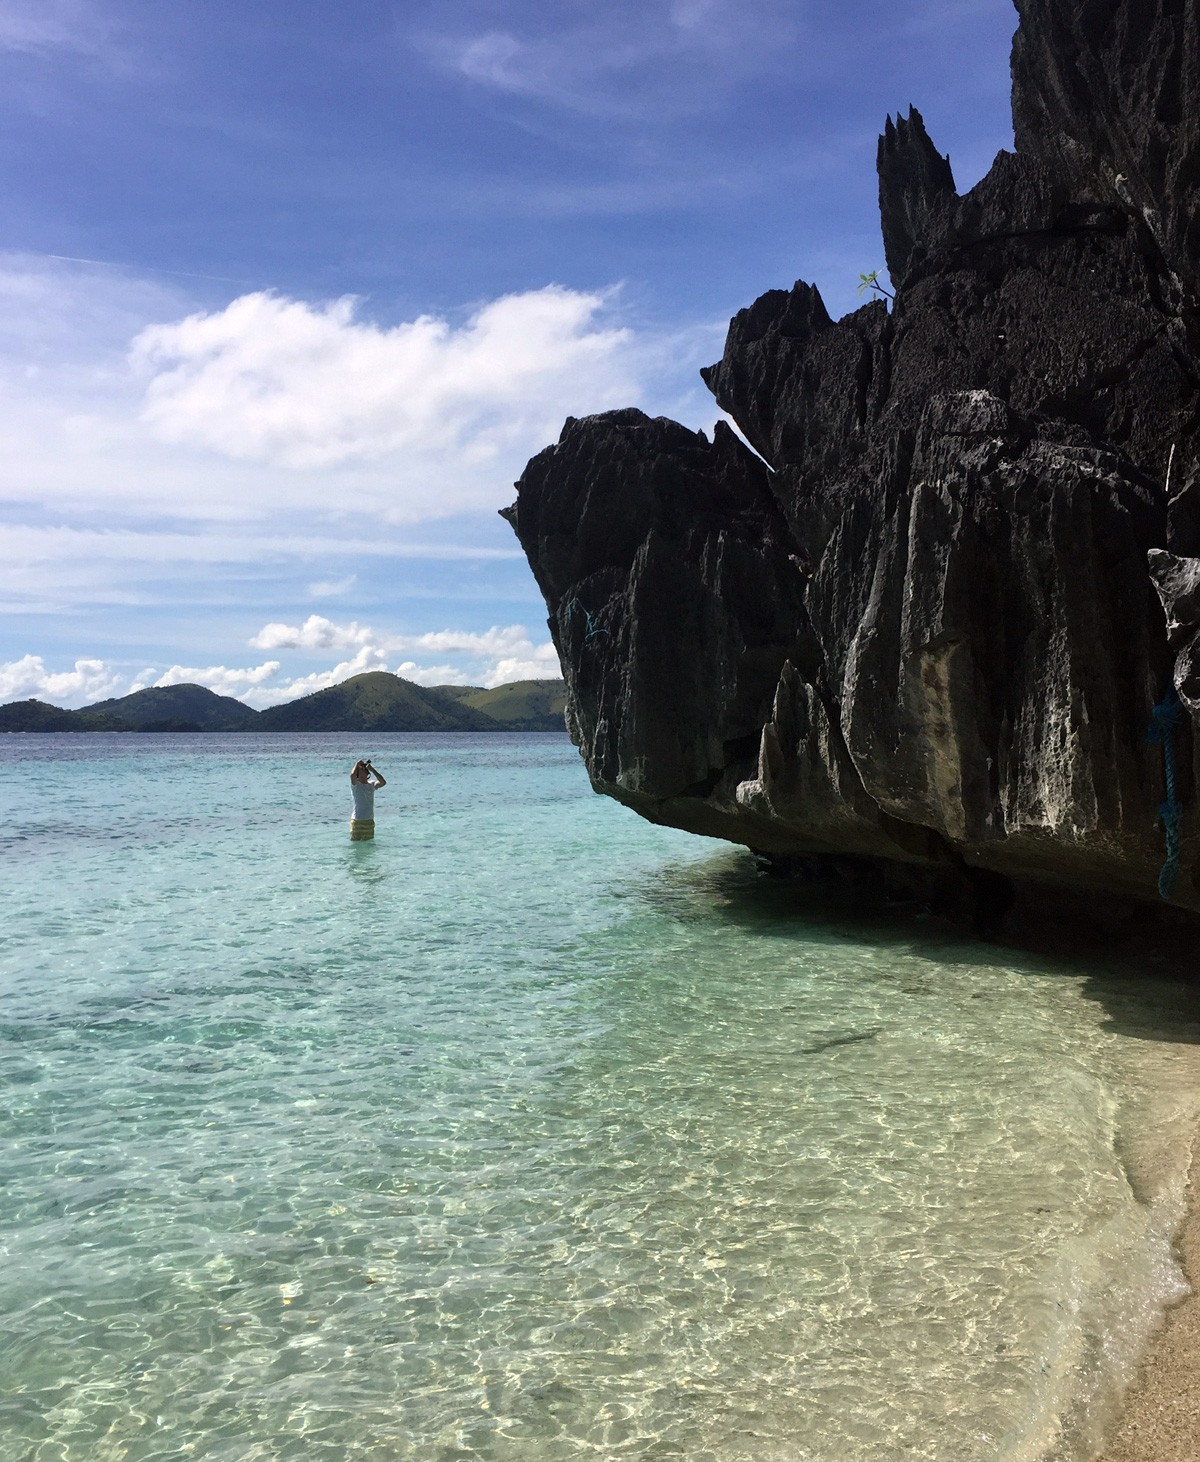 Andrei take a photos on Banol beach, Palawan - Travelblogstories